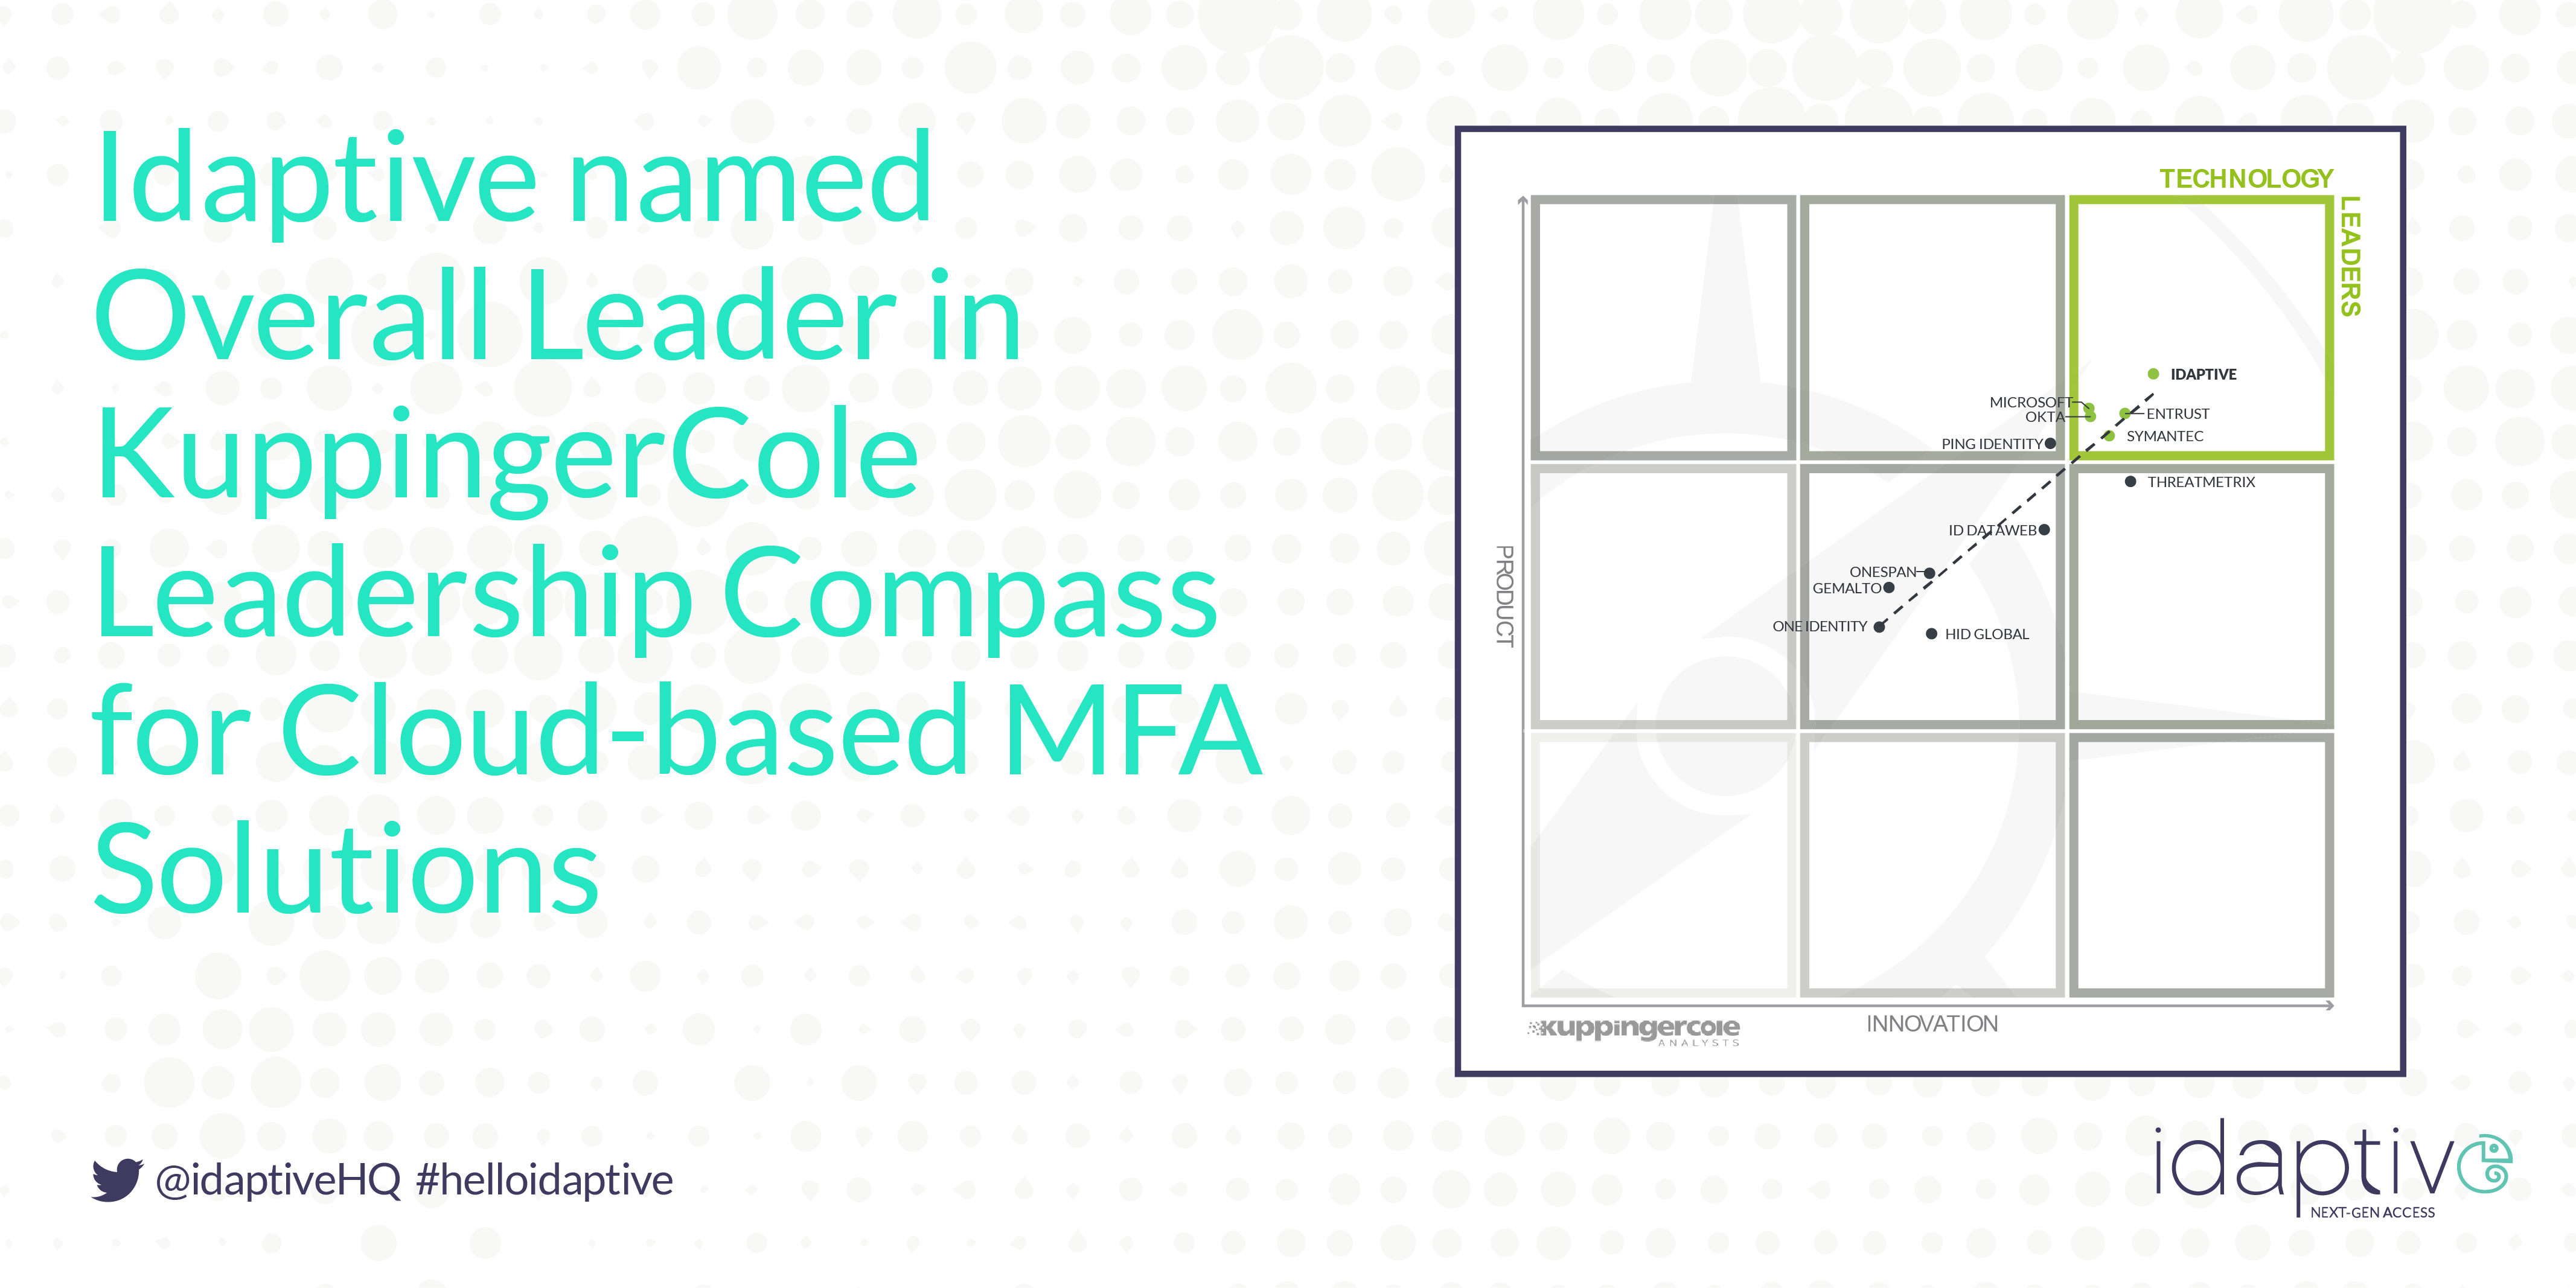 Idaptive named Overall Leader in KuppingerCole Leadership Compass for Cloud-based MFA Solutions